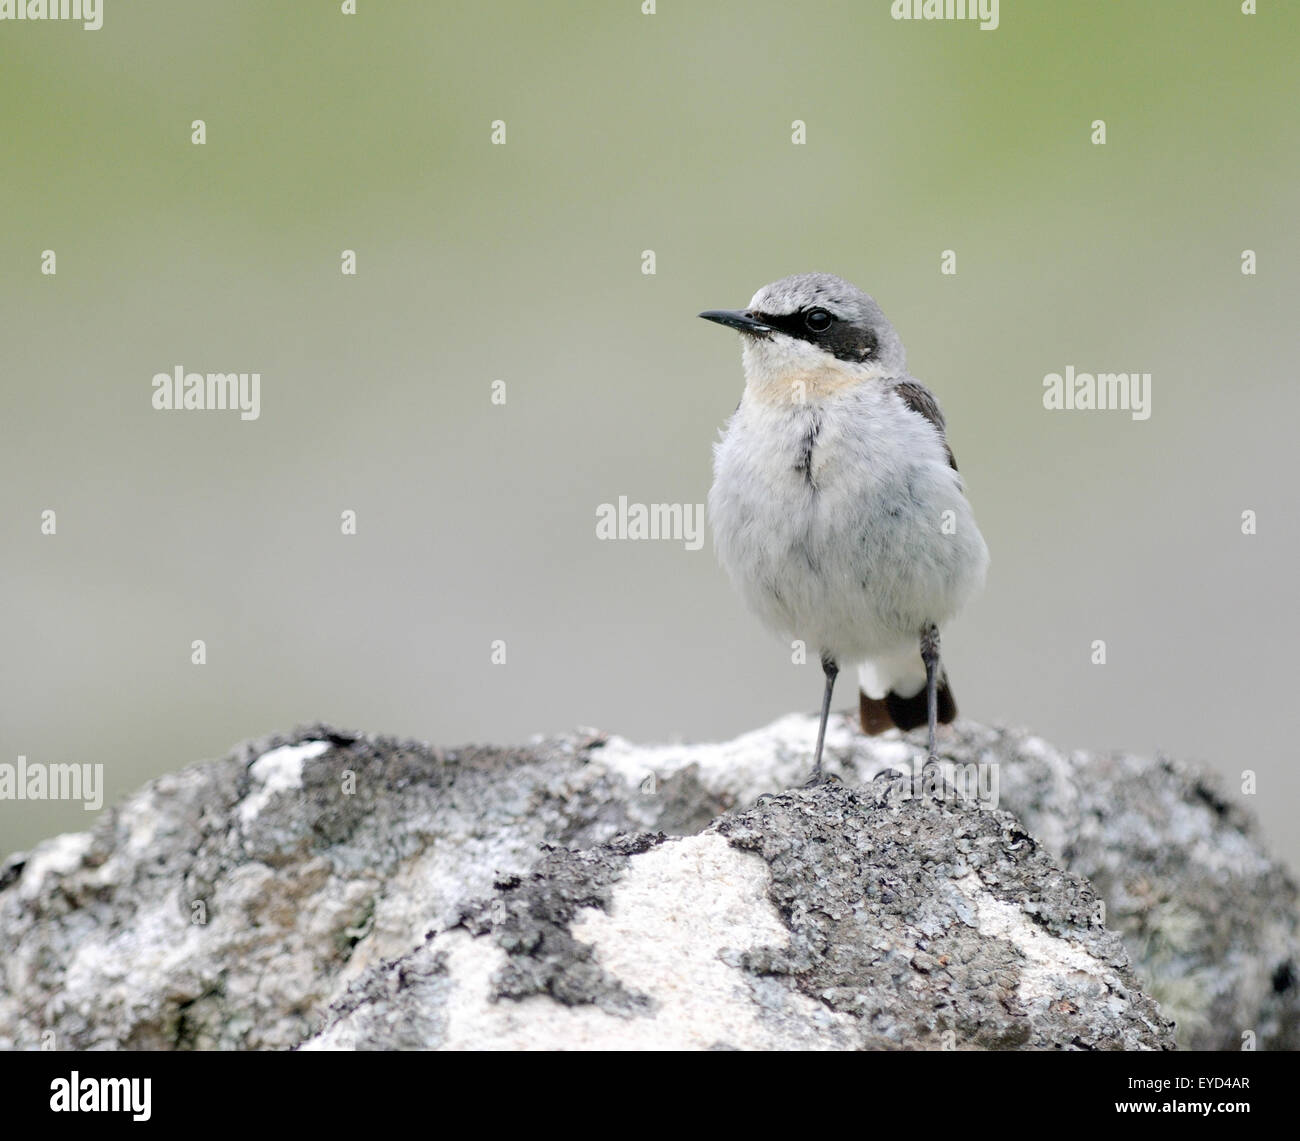 A Northern Wheatear (Oenanthe oeanthe) perches on a lichen covered rock. Hirta, St Kilda, Scotland, UK. - Stock Image